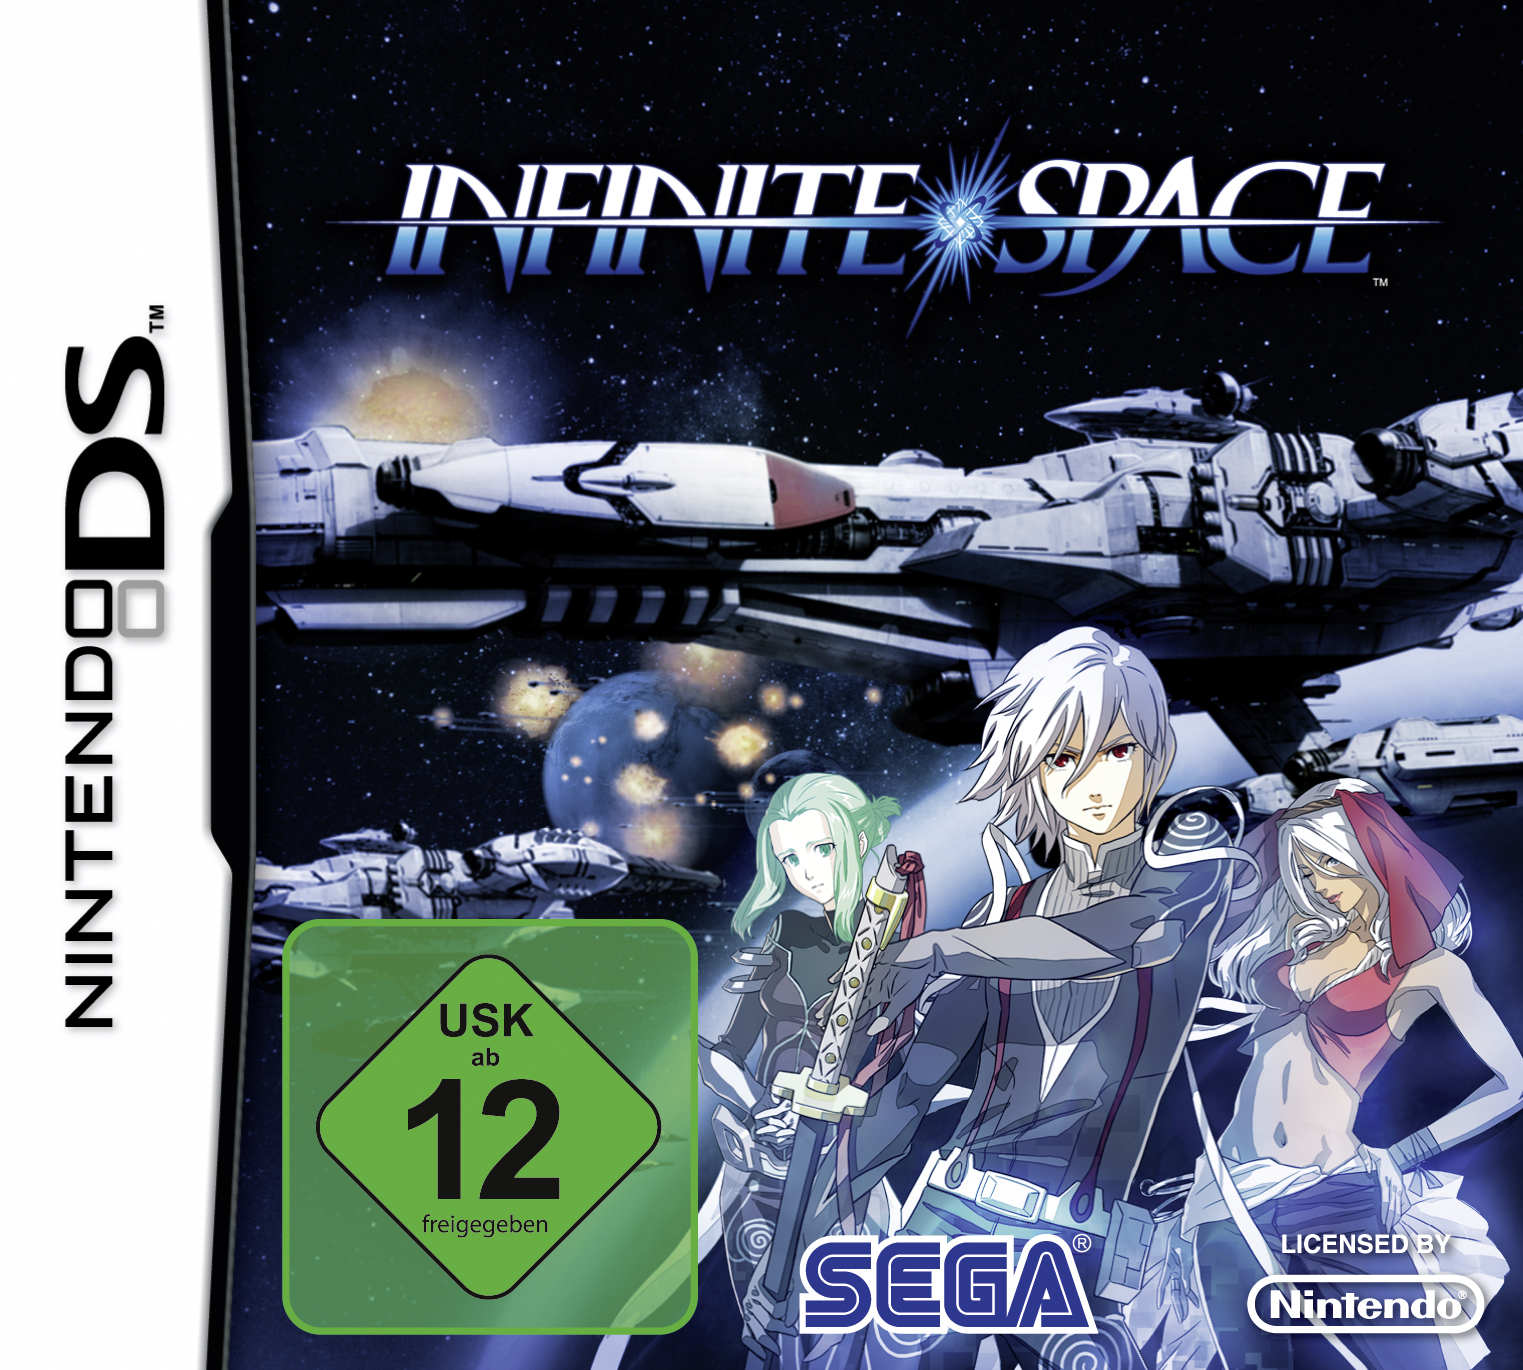 Infinite Space - Packshot (USK)